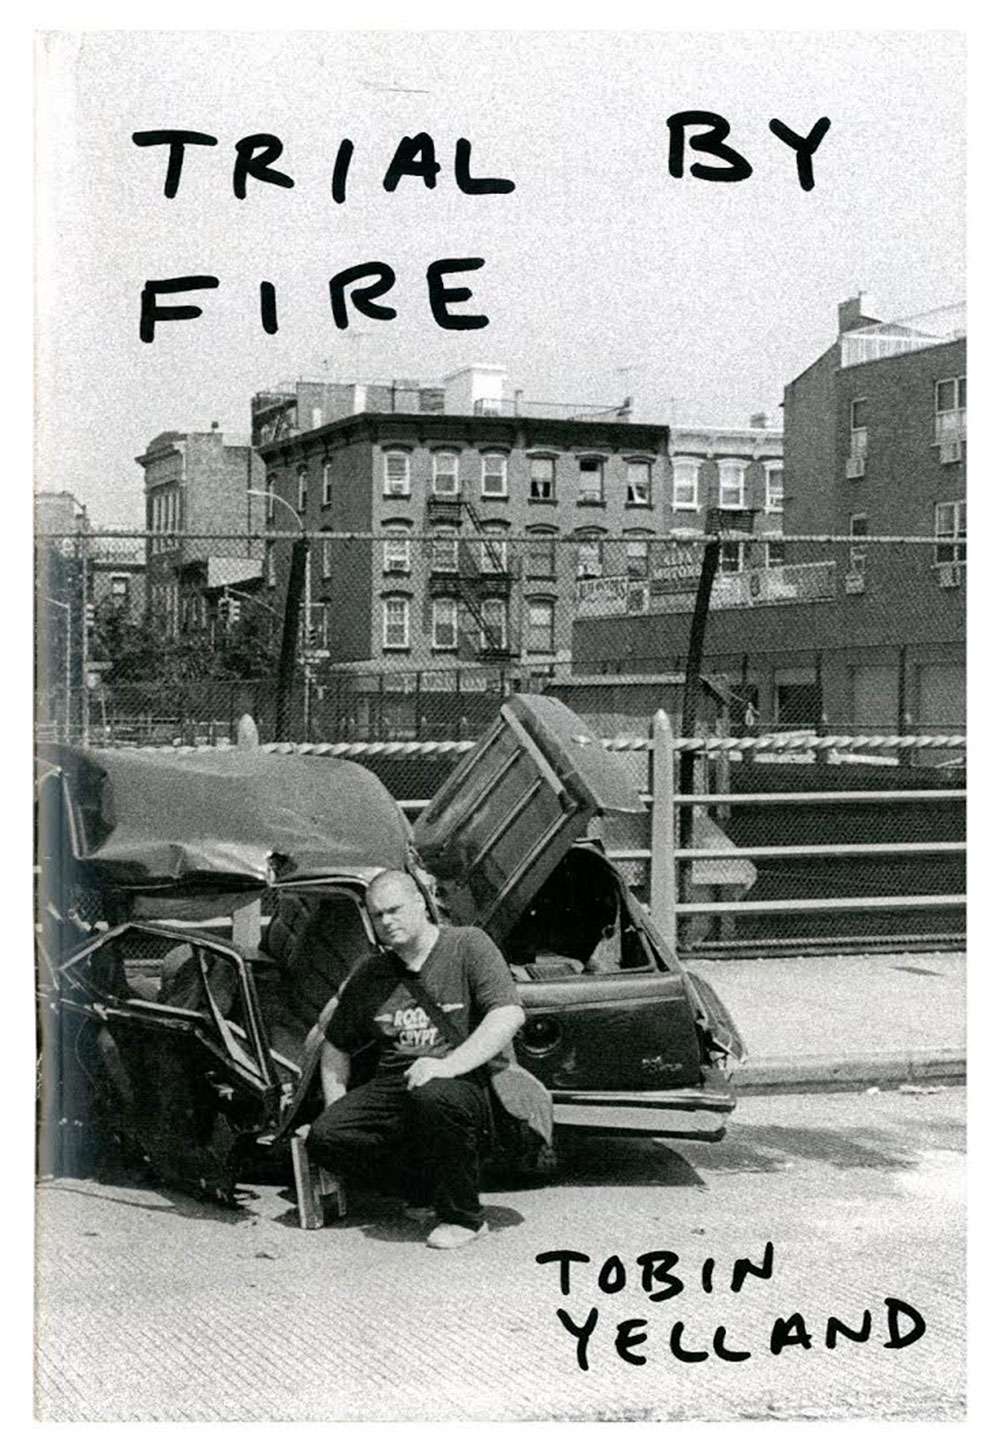 A man in a city squatting in front of a wrecked car